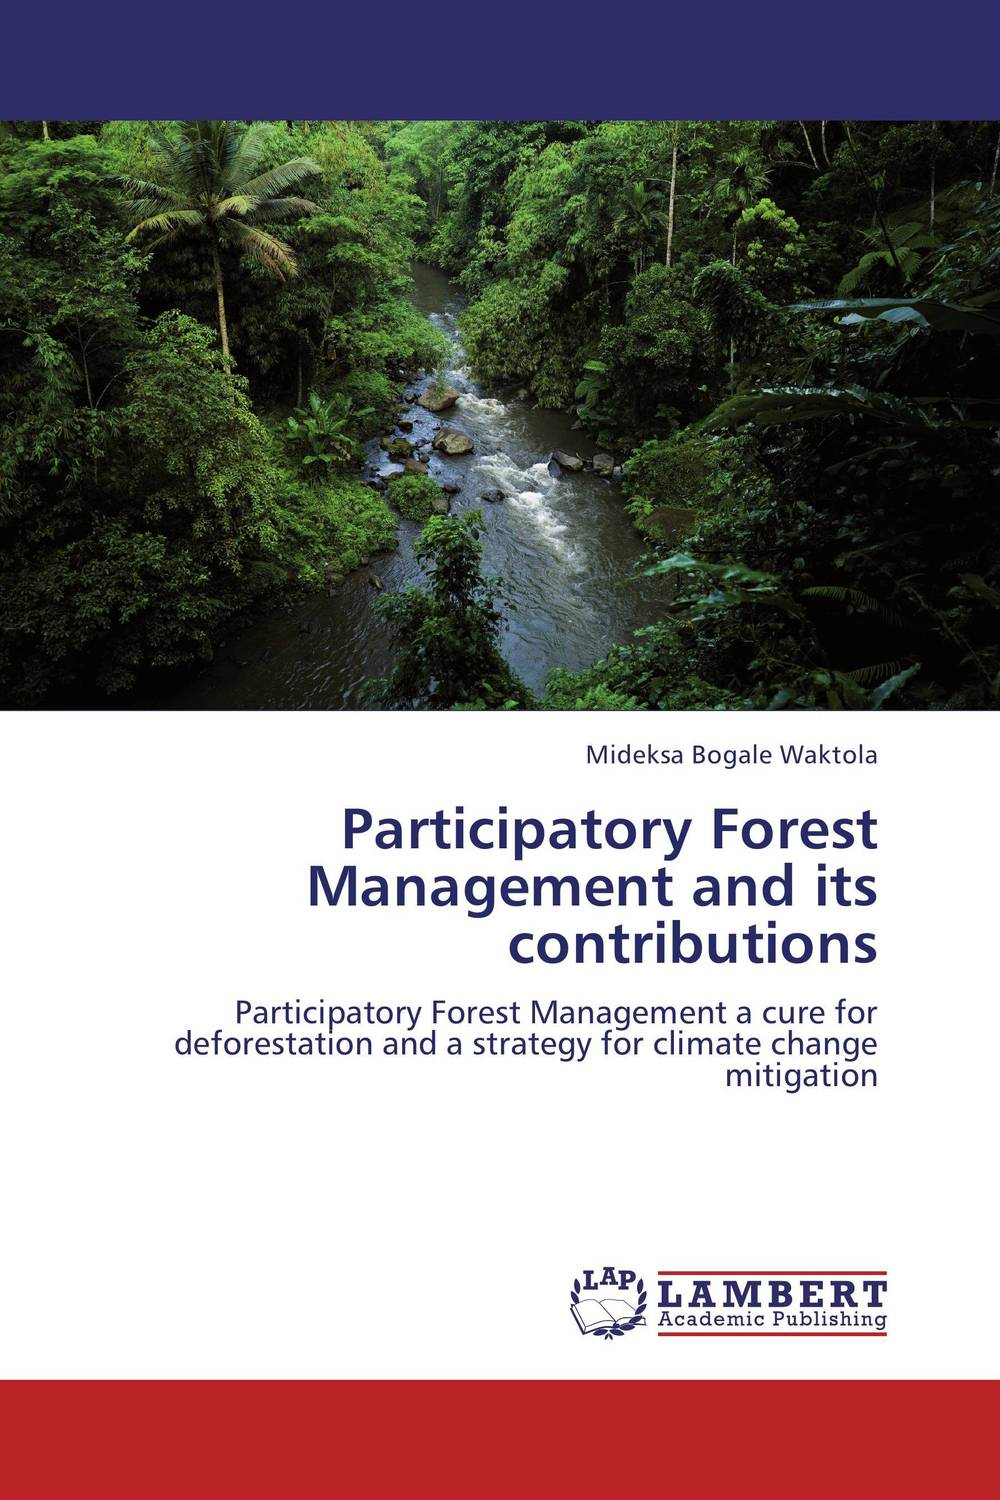 где купить Participatory Forest Management and its contributions по лучшей цене